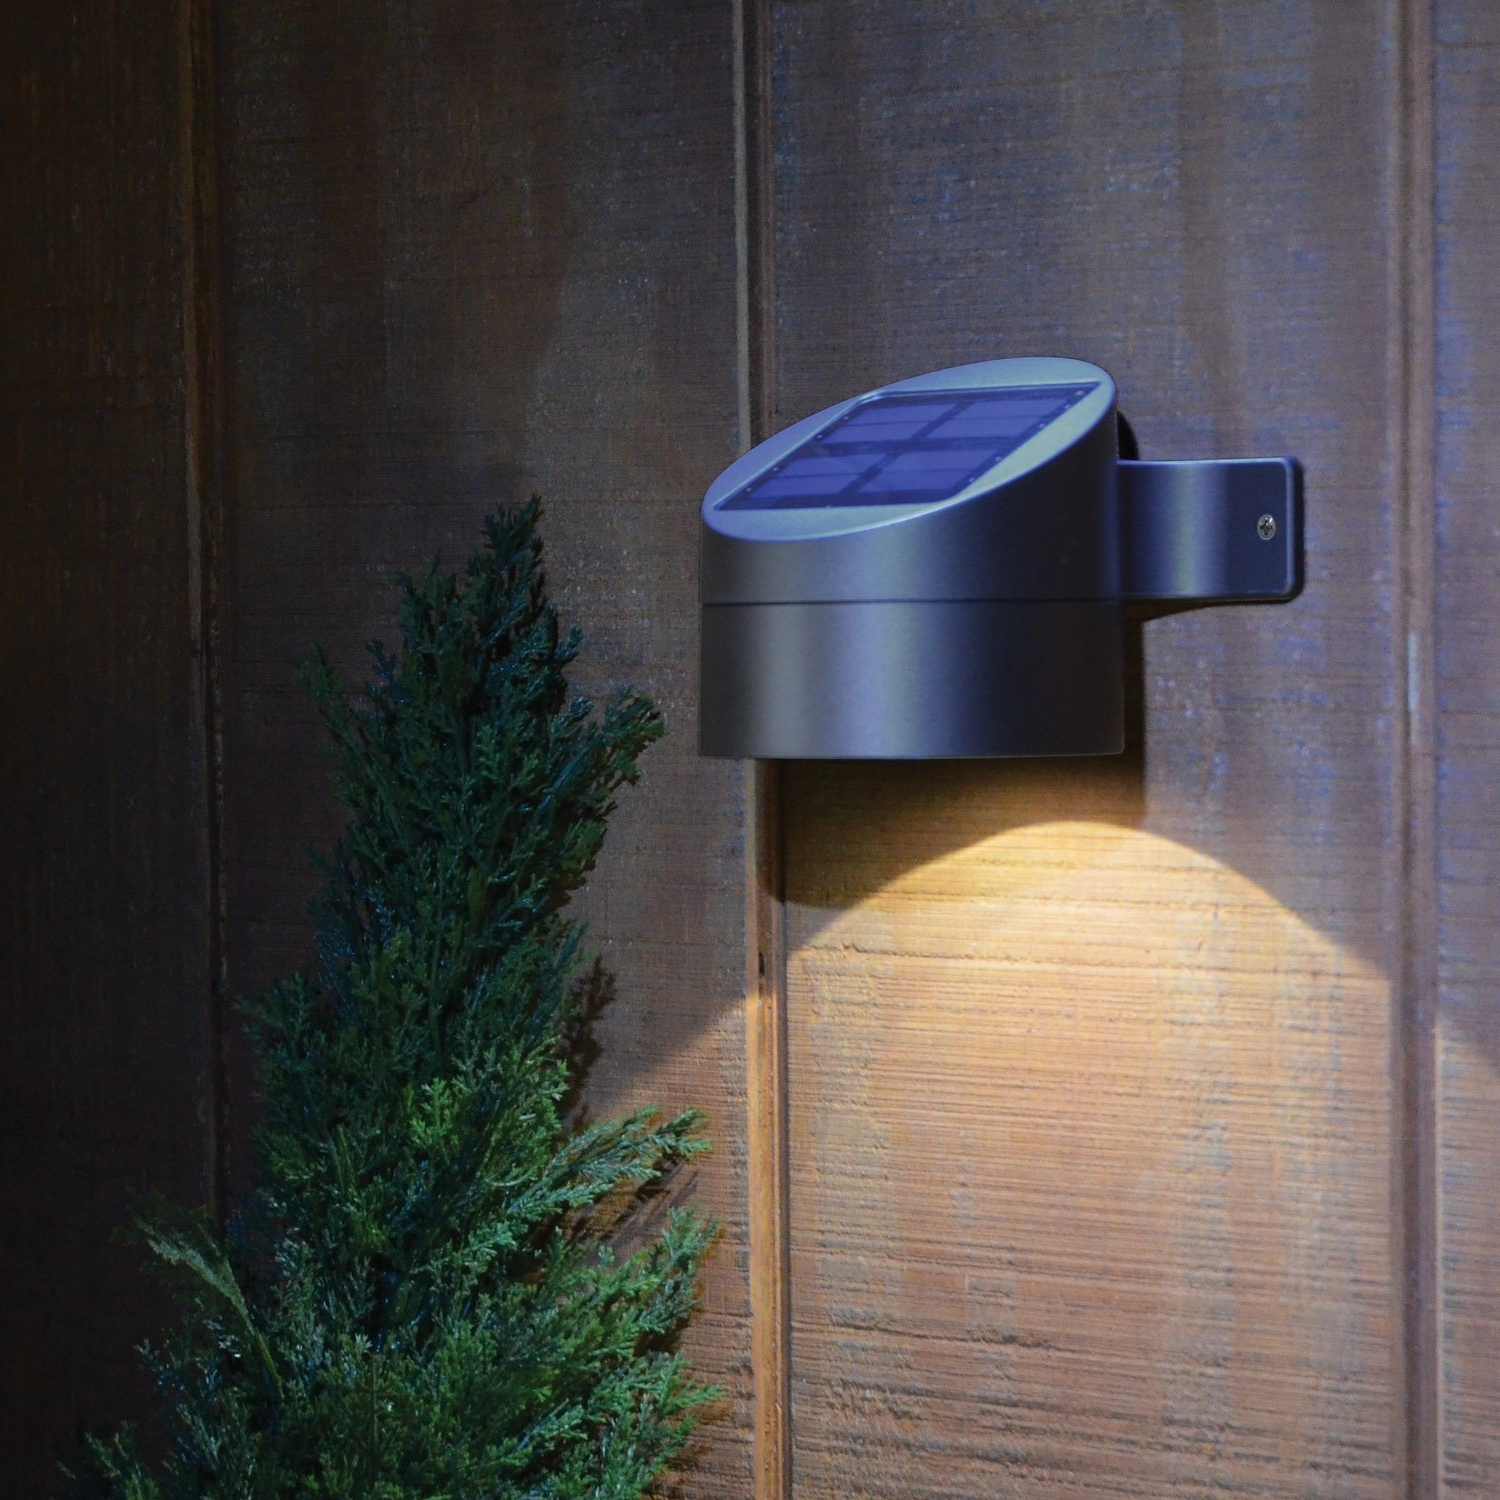 Most Recently Released Light : Home Accessories Stuff Solar Wall Mount Outdoor Lights Inside Solar Outdoor Wall Light Fixtures (View 6 of 20)